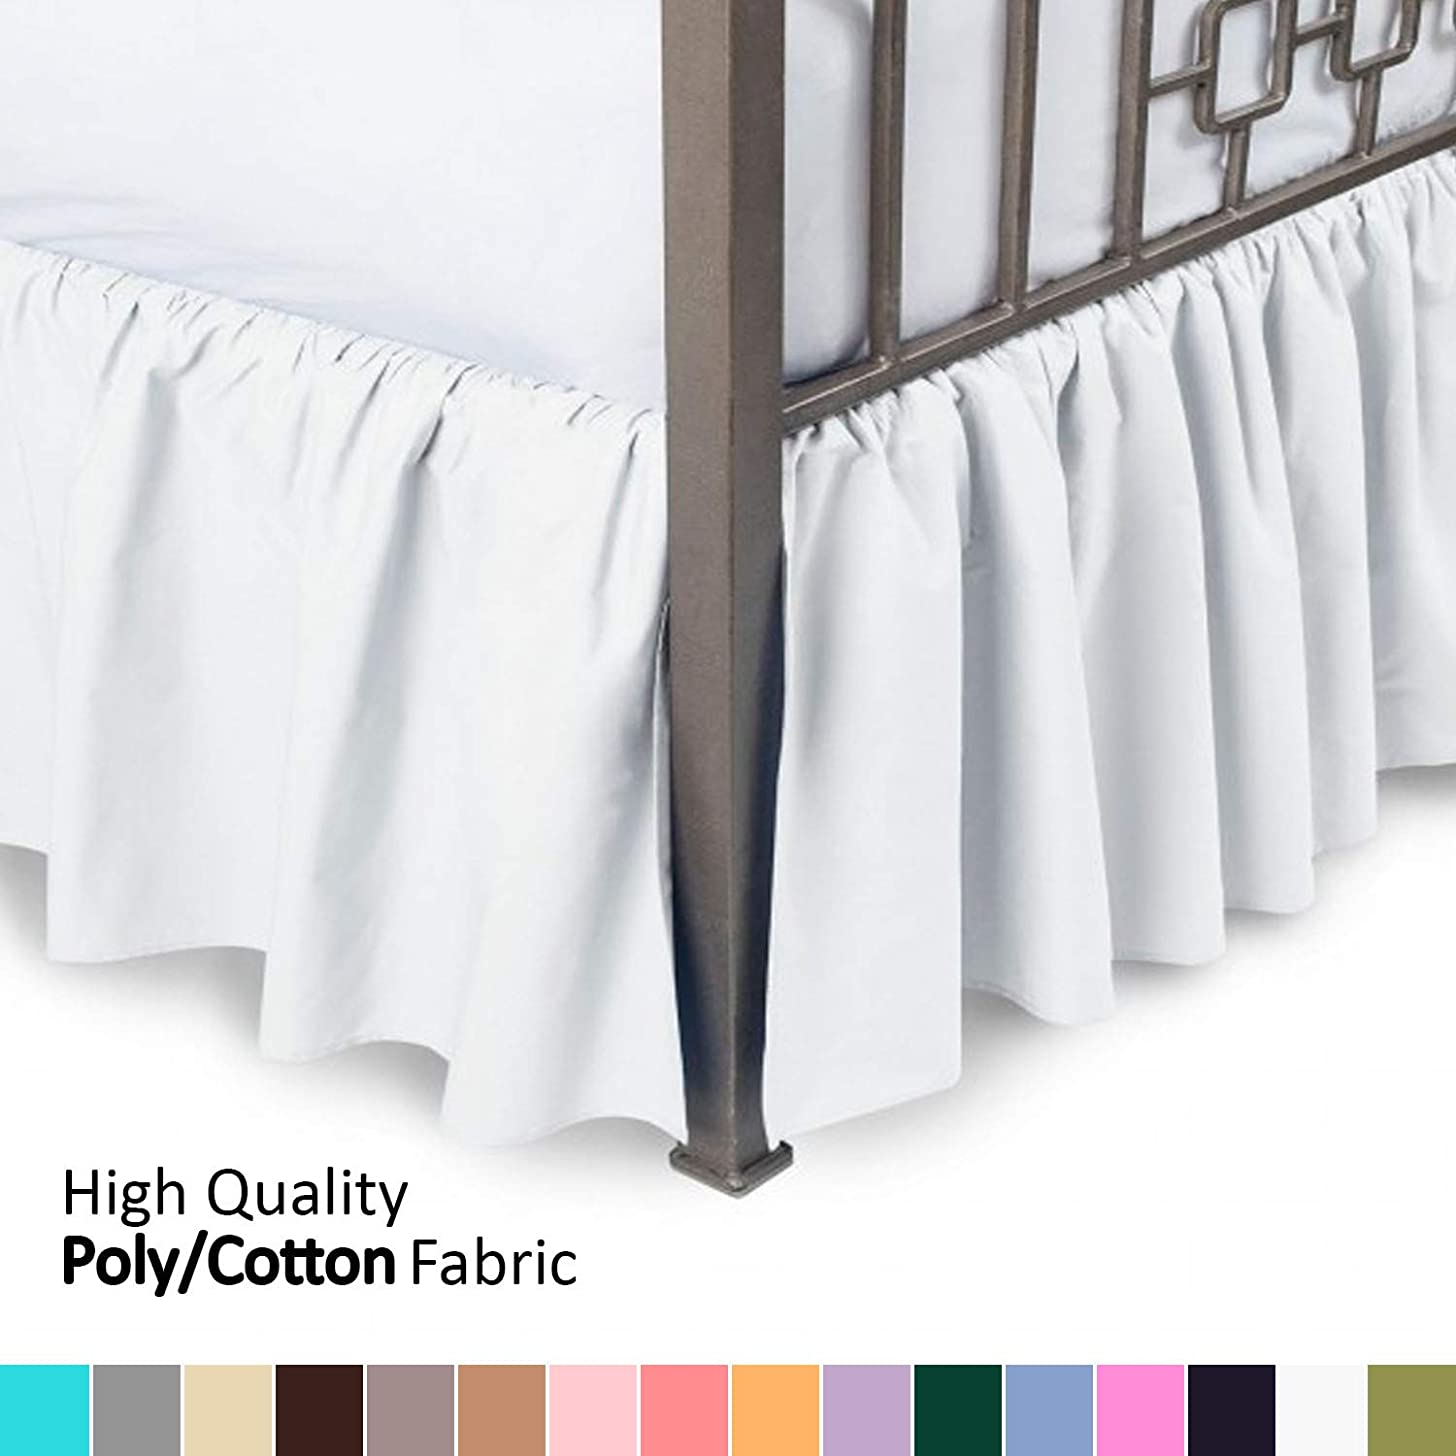 Ruffled Bed Skirt with Split Corners - Twin, White, 21 Inch Drop Bedskirt (Available in and 16 Colors) Dust Ruffle.